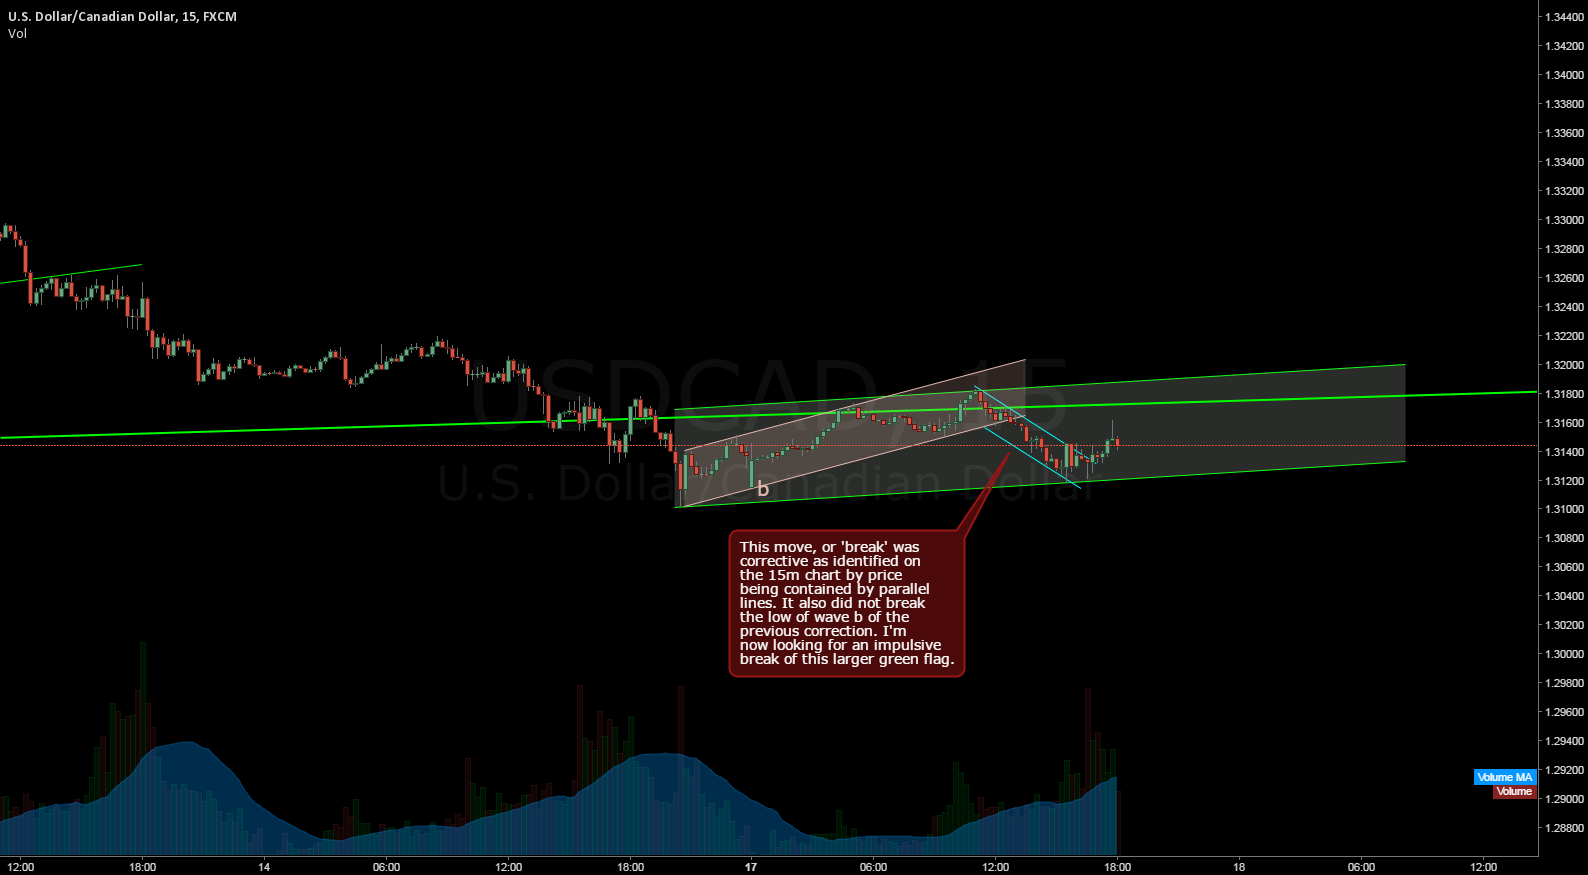 USDCAD forming a larger flag